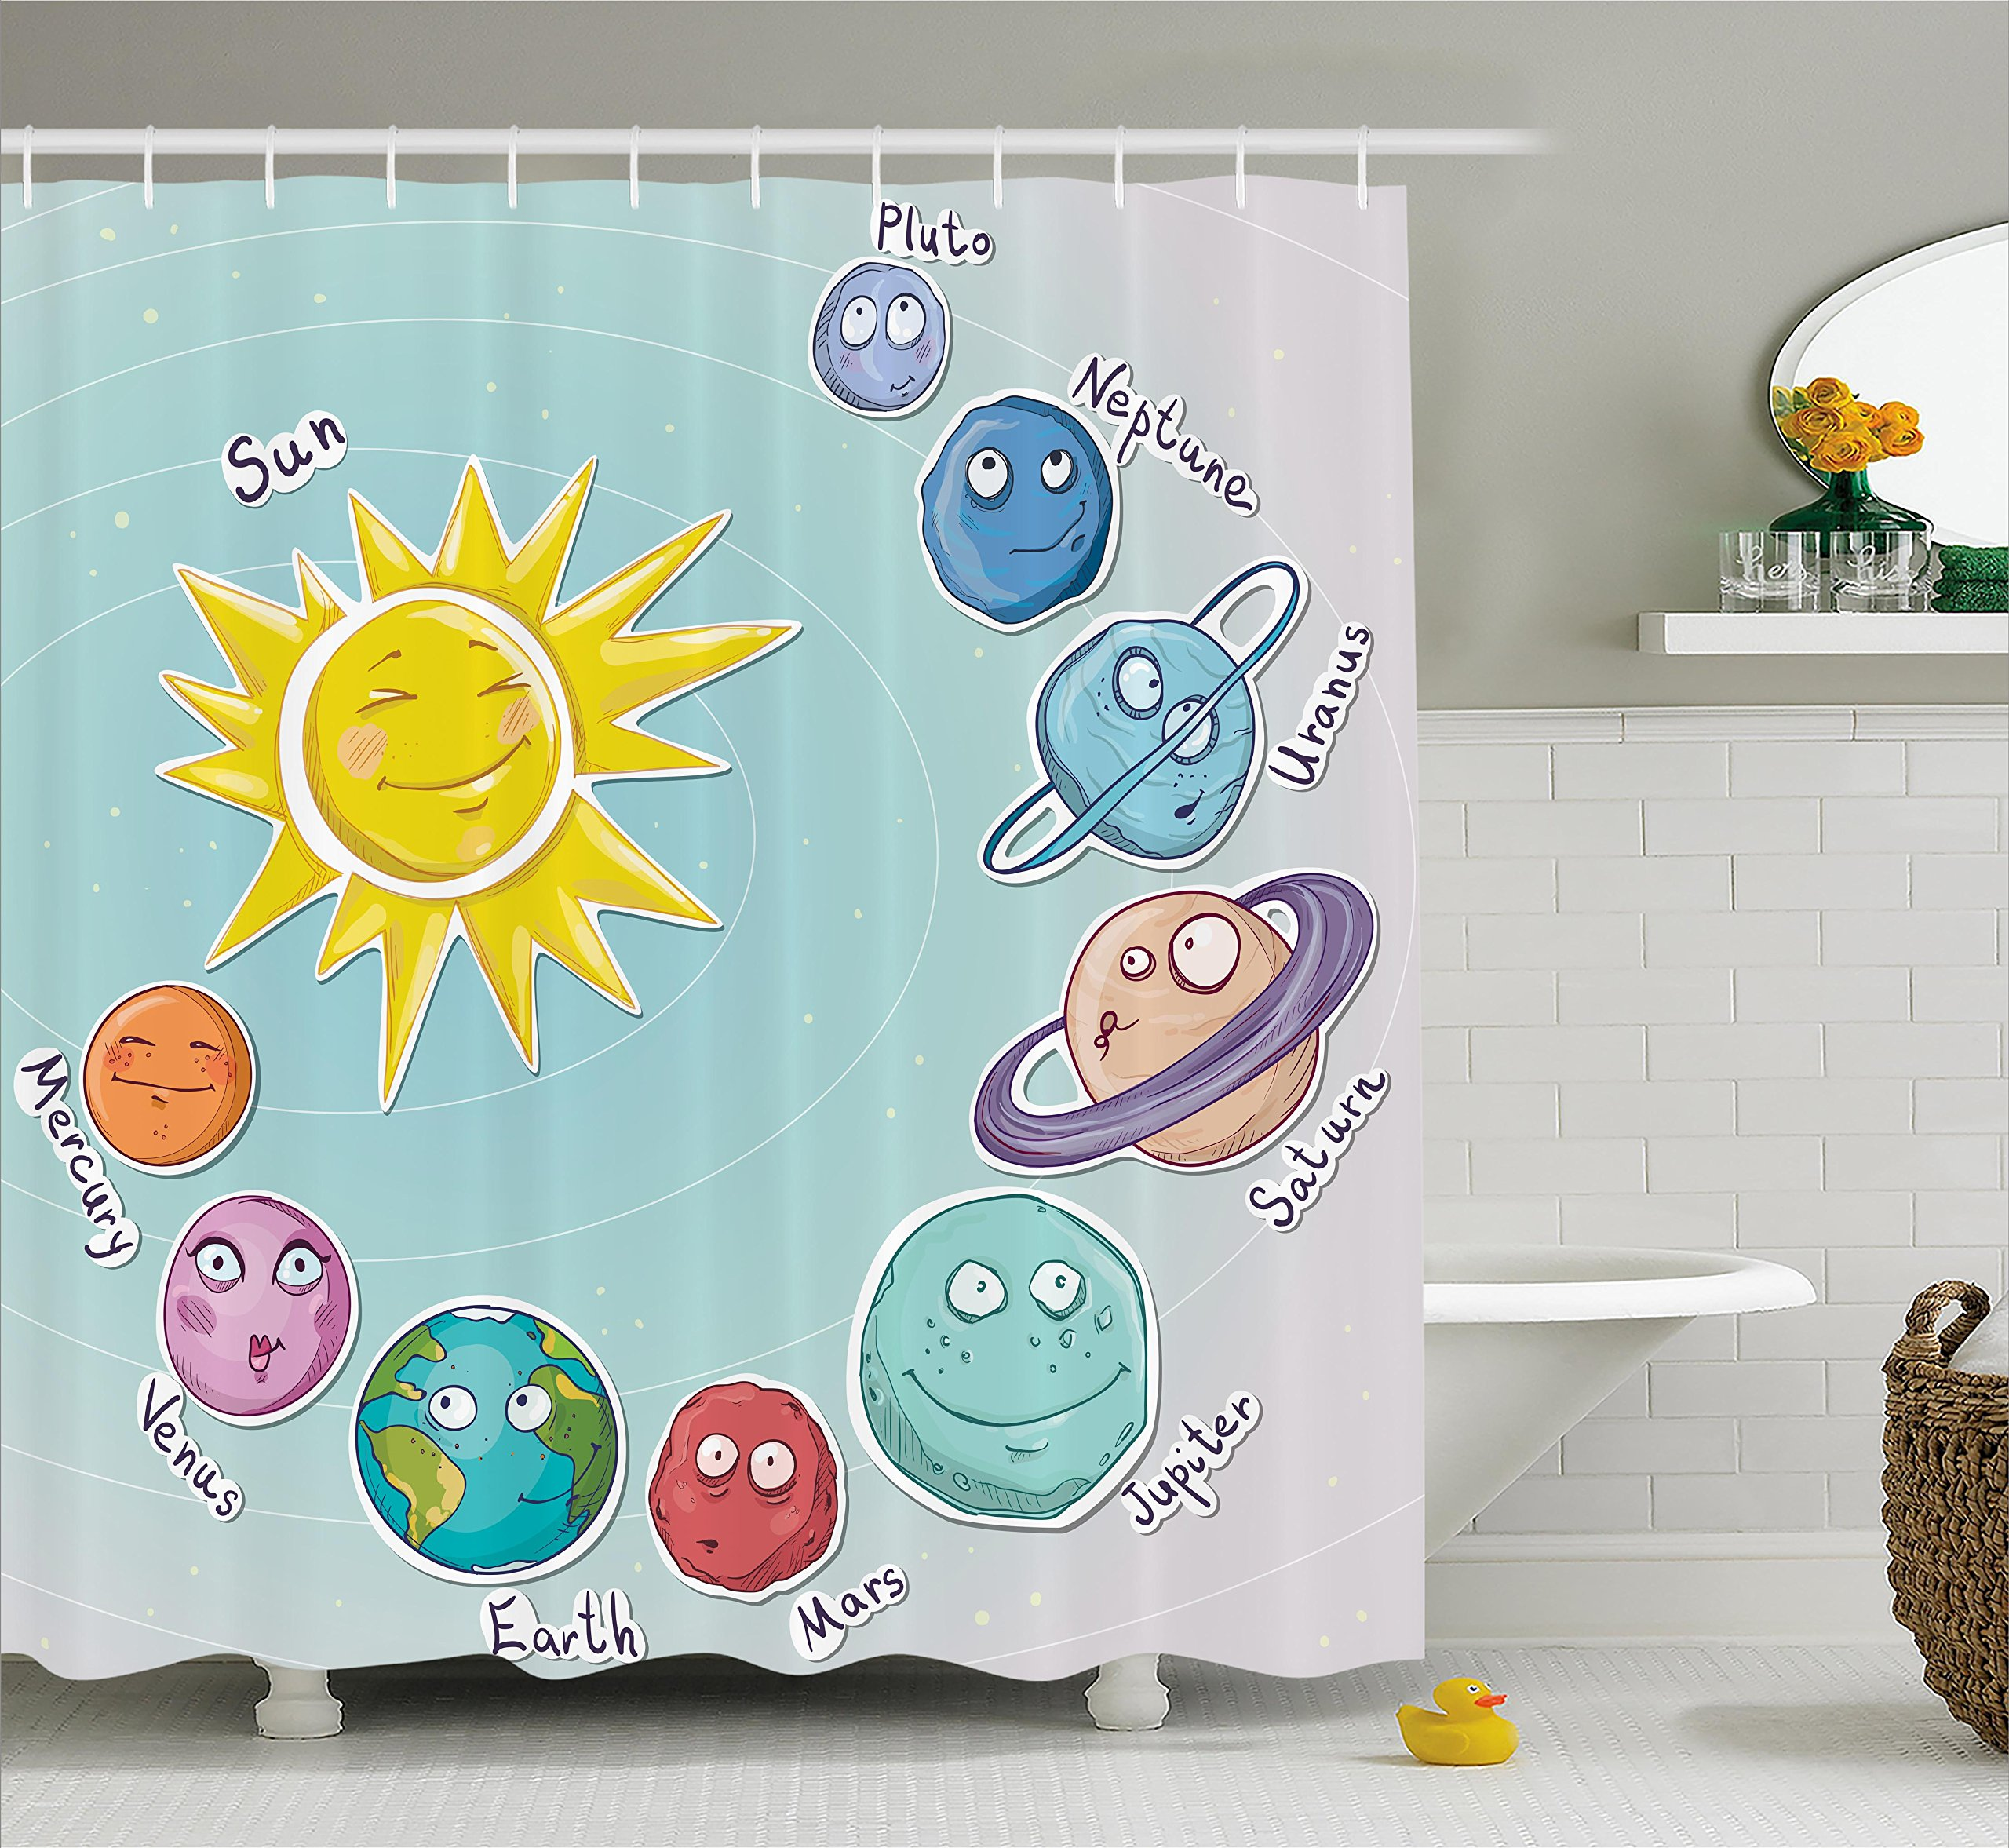 Ambesonne Space Shower Curtain, Cute Cartoon Sun and Planets of Solar System Fun Celestial Chart Baby Kids Nursery Theme, Fabric Bathroom Decor Set with Hooks, 75 inches Long, Multi